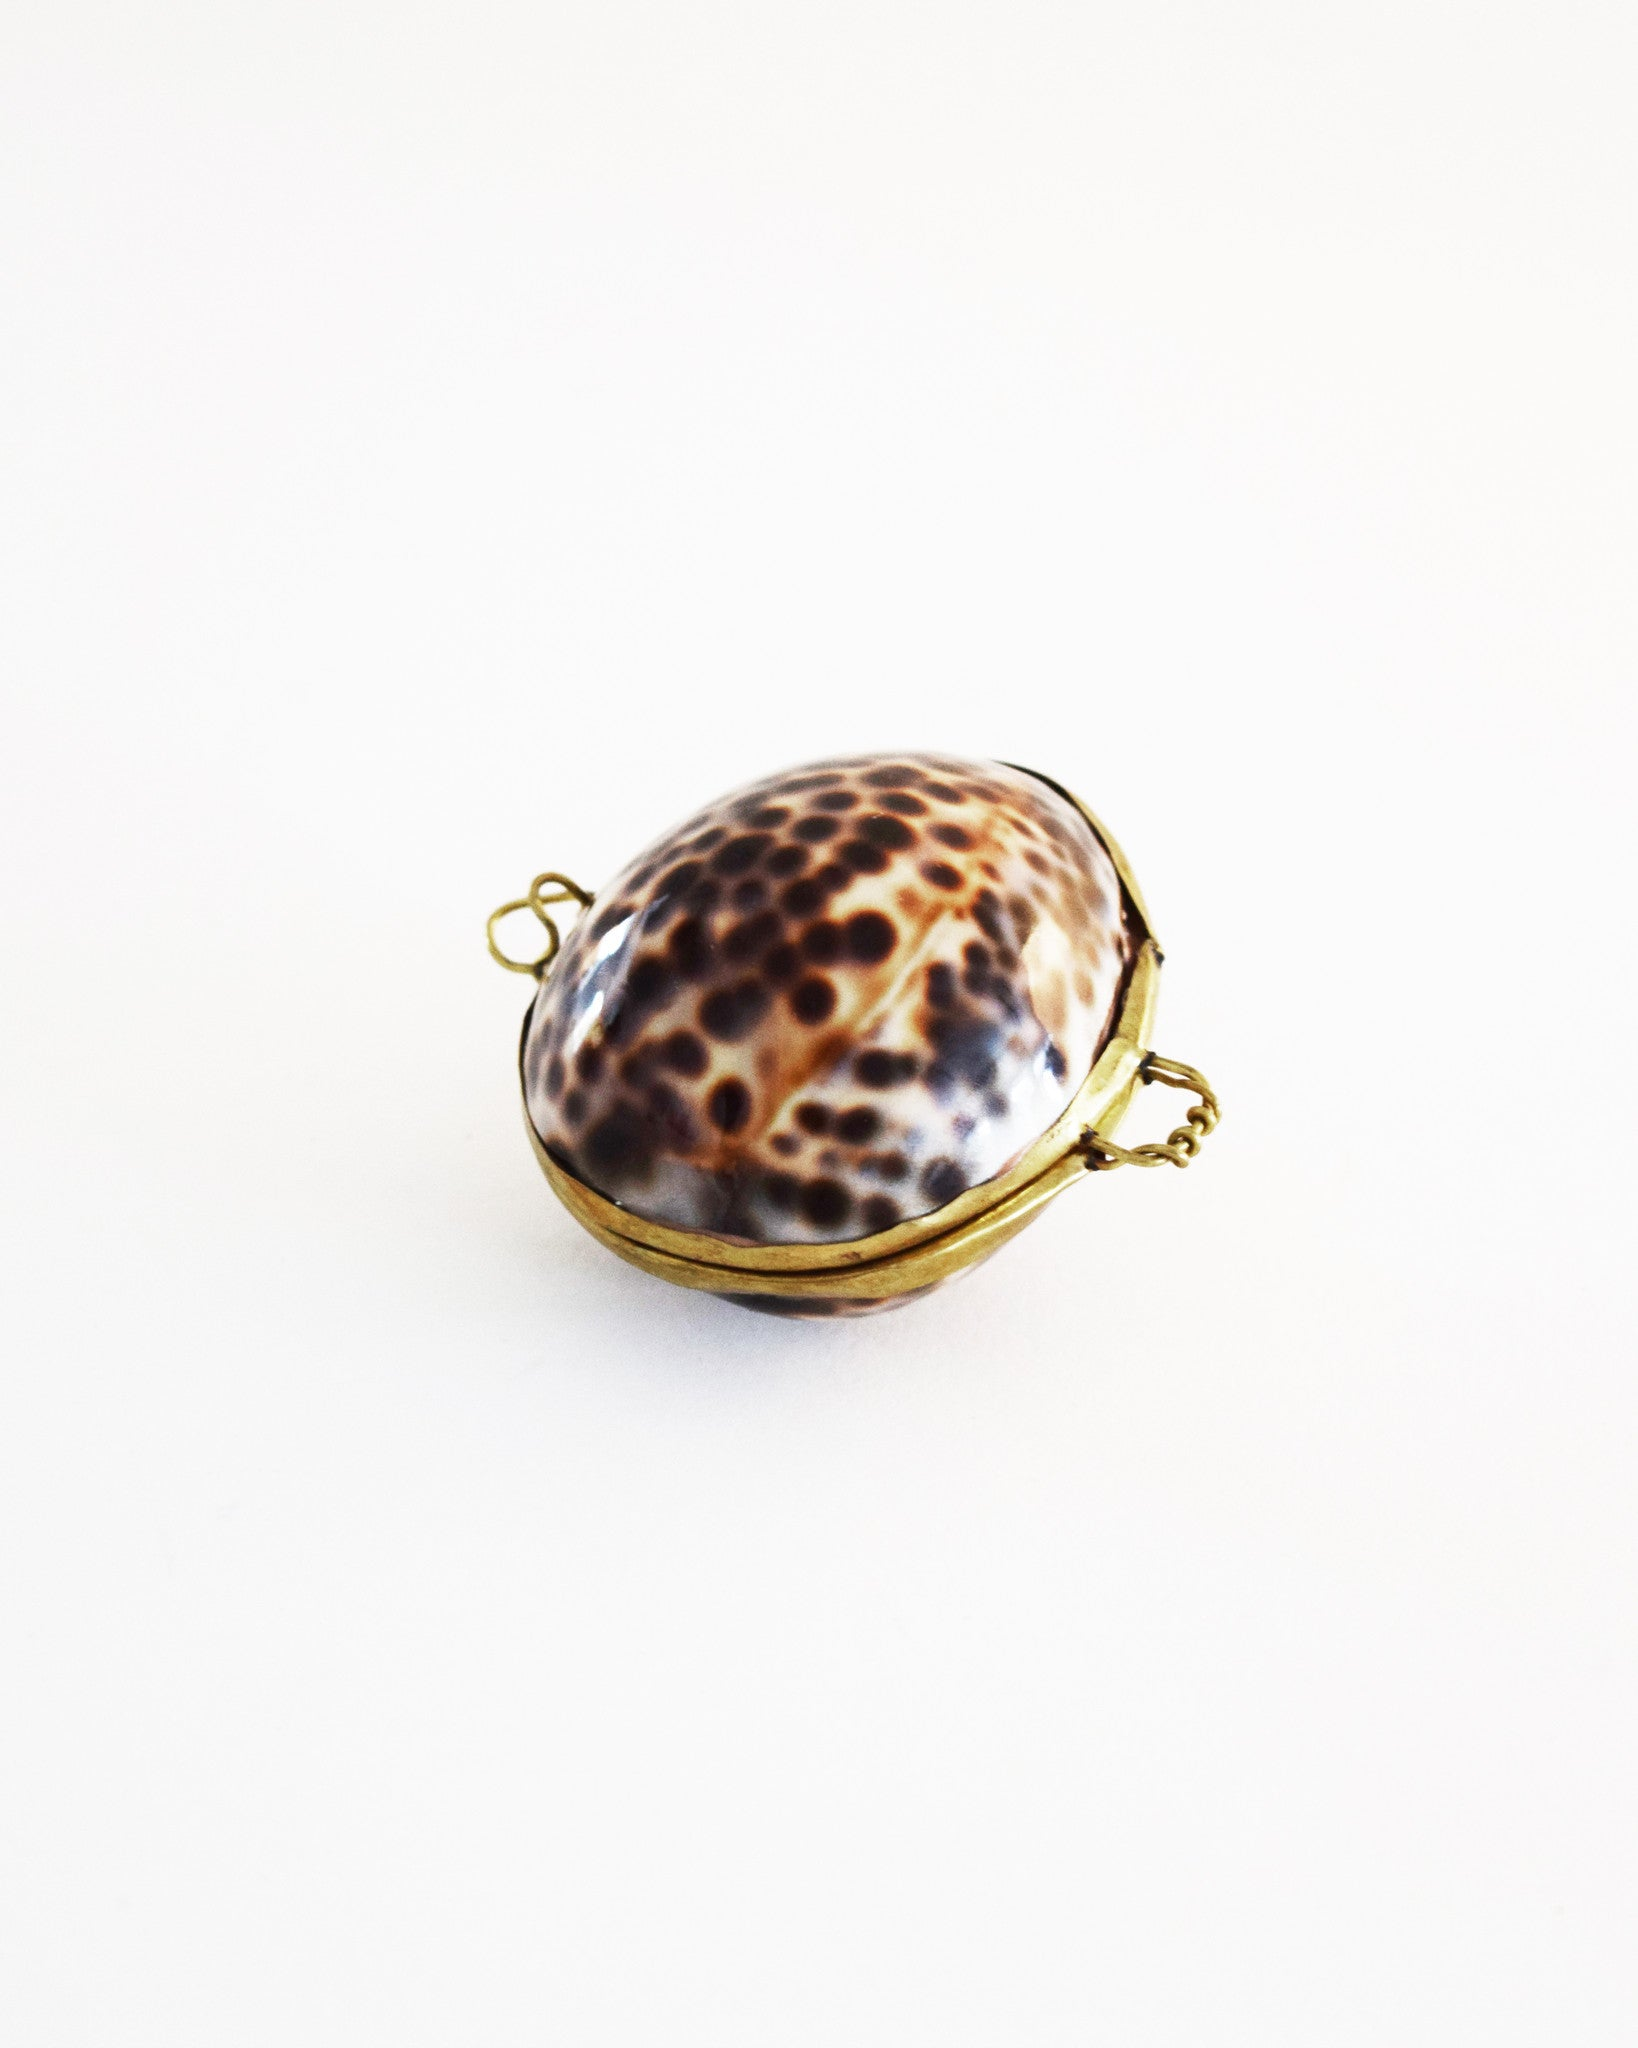 Vintage Spotted Shell Coin Purse Pendant